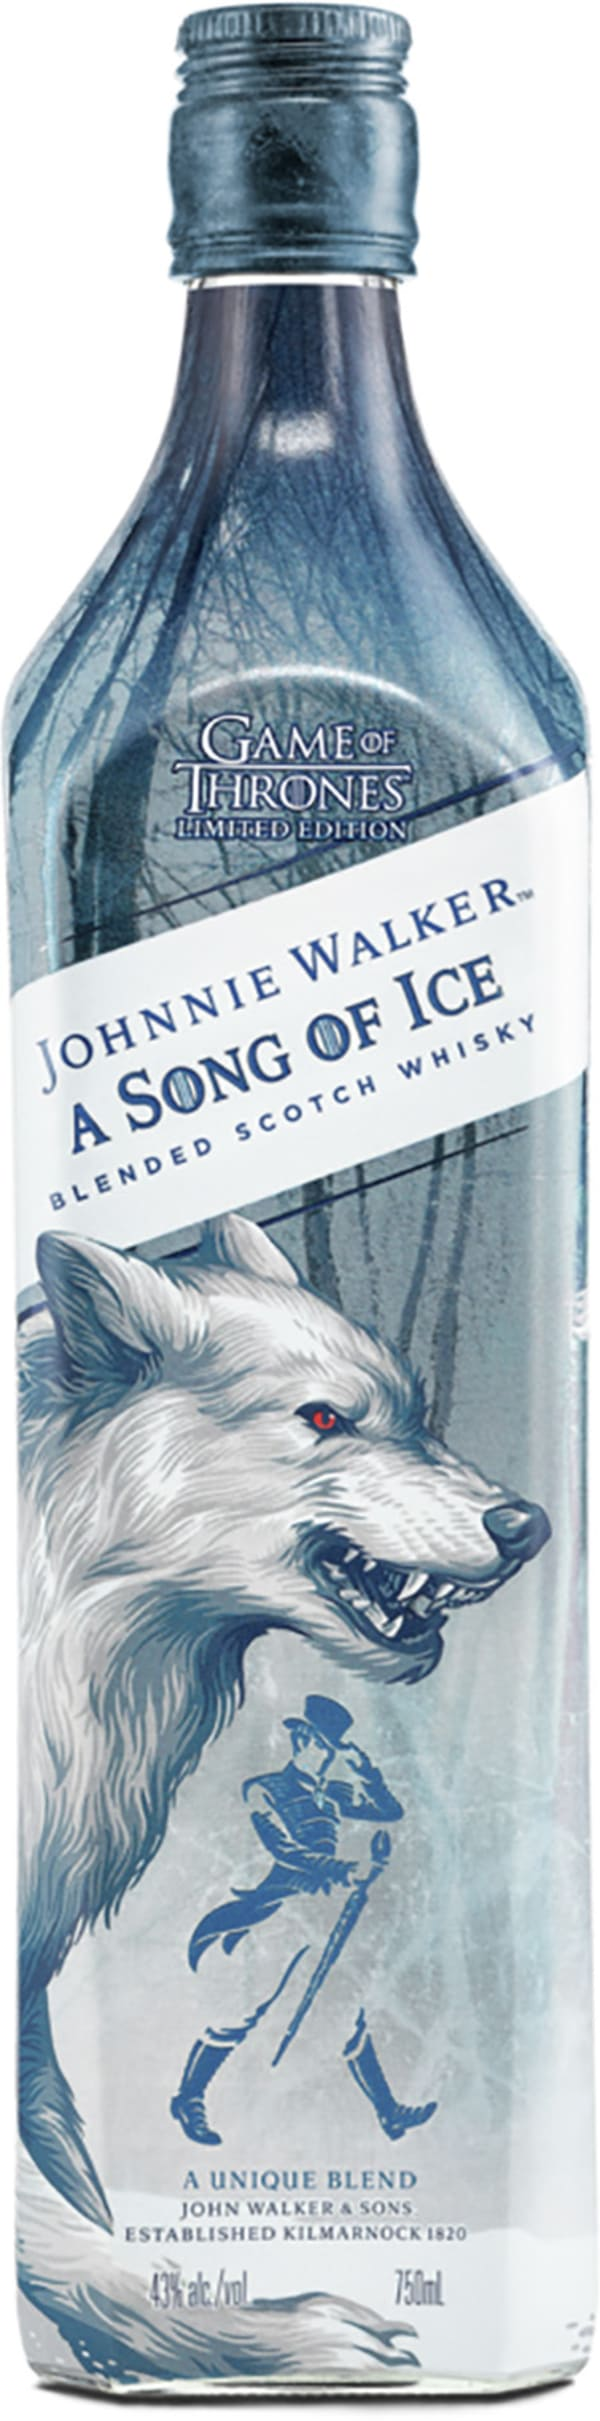 Johnnie Walker A Song of Ice Game of Thrones Limited Edition